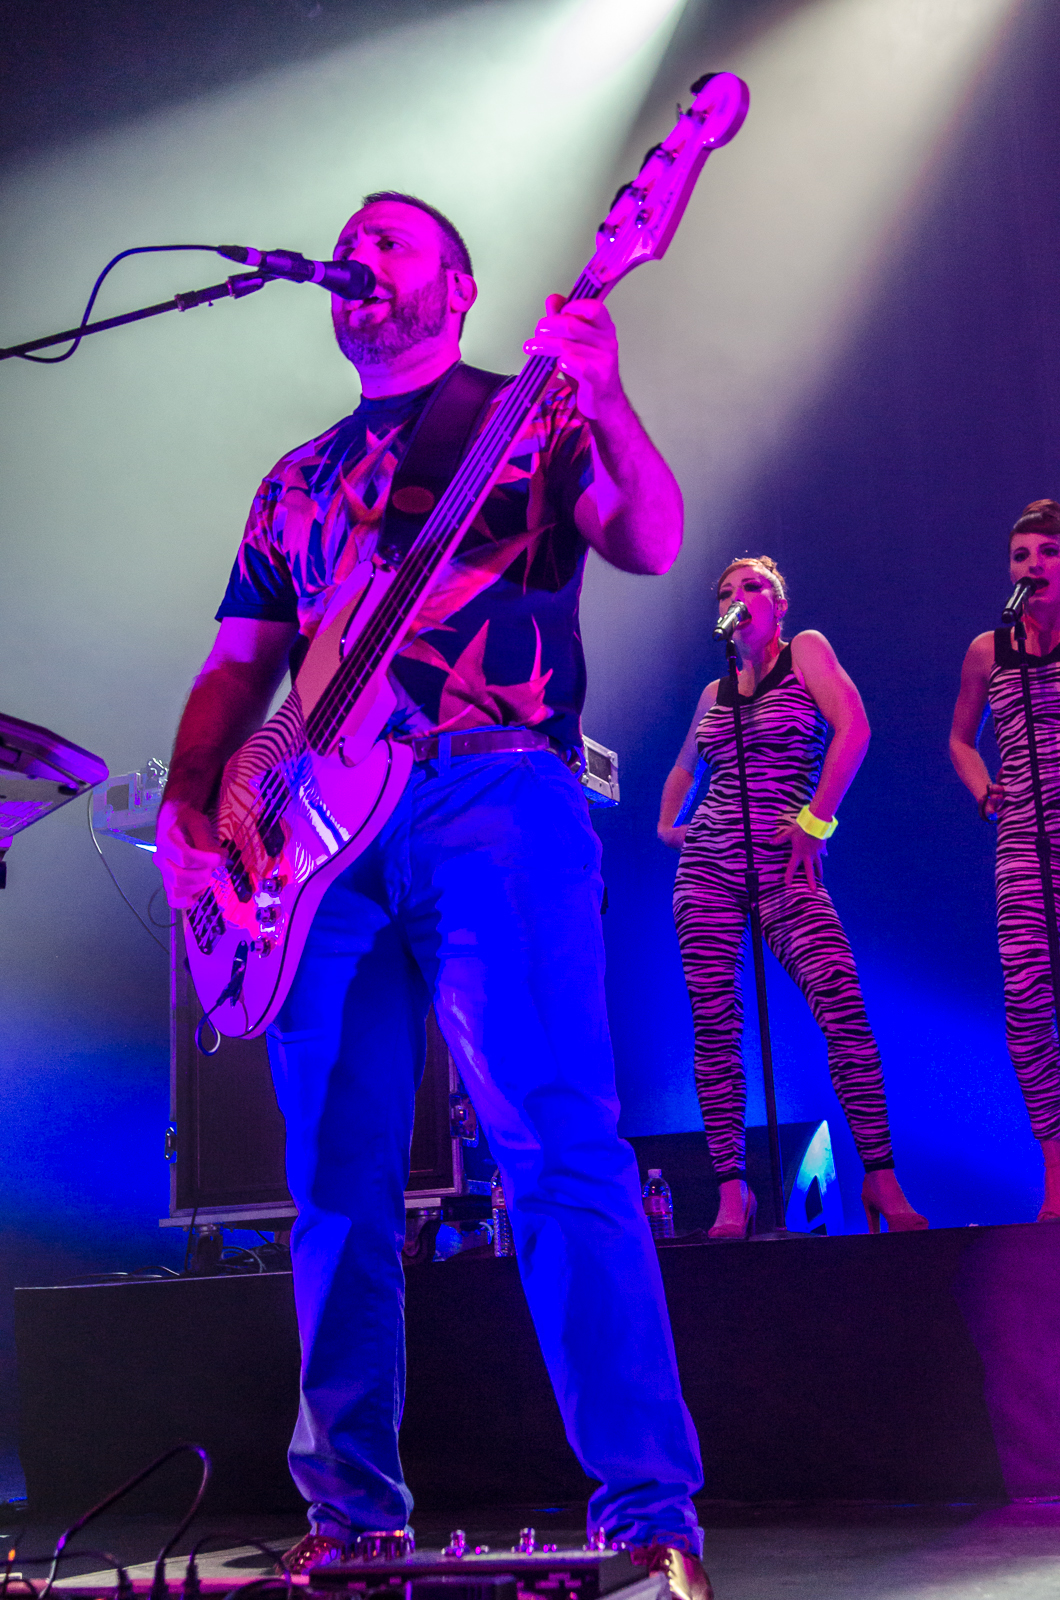 scissor_sisters_fox_theater_oakland_ca_2